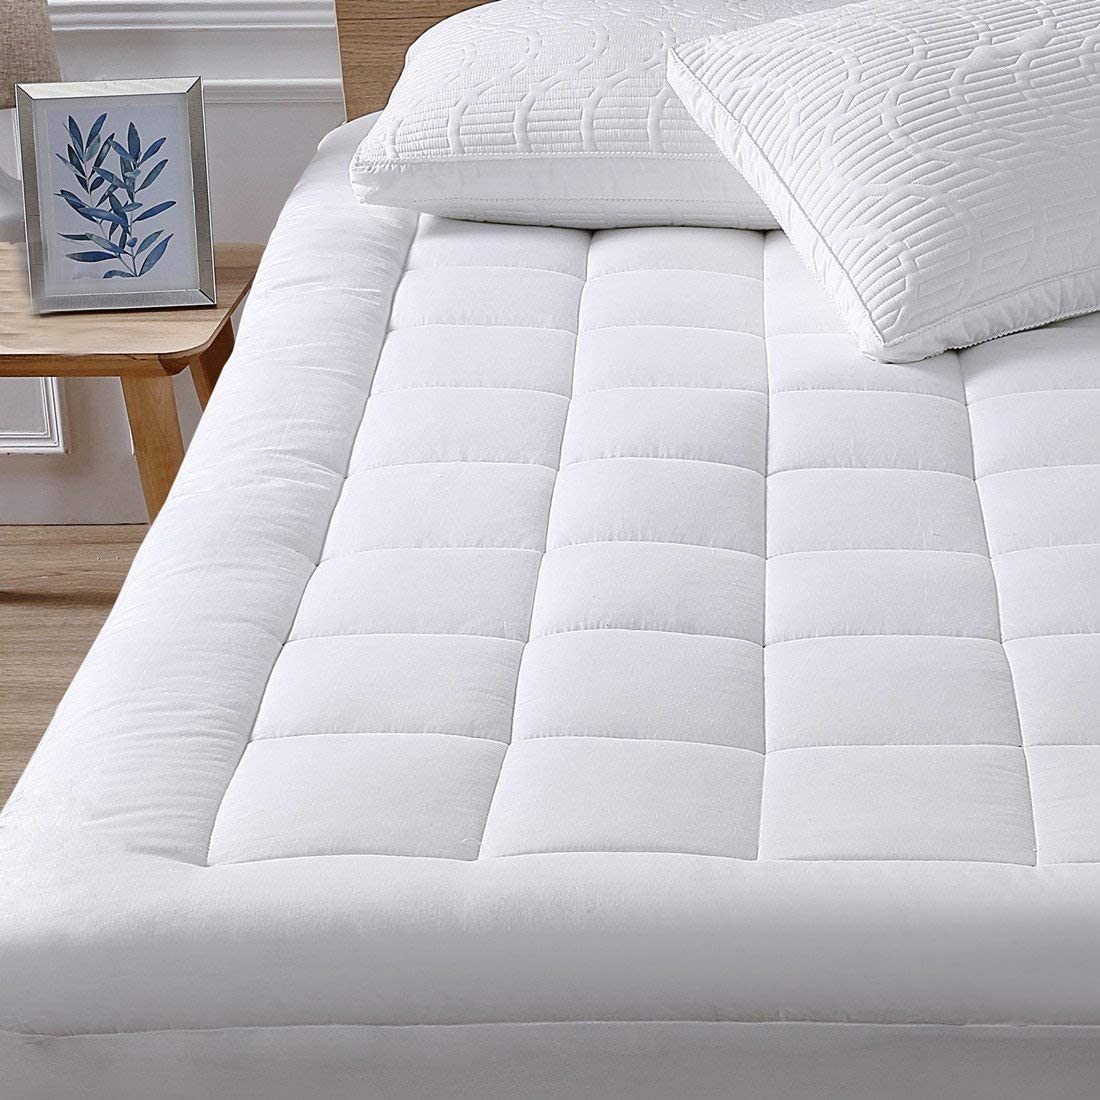 oaskys Cooling Pillow Top Queen Mattress Pad